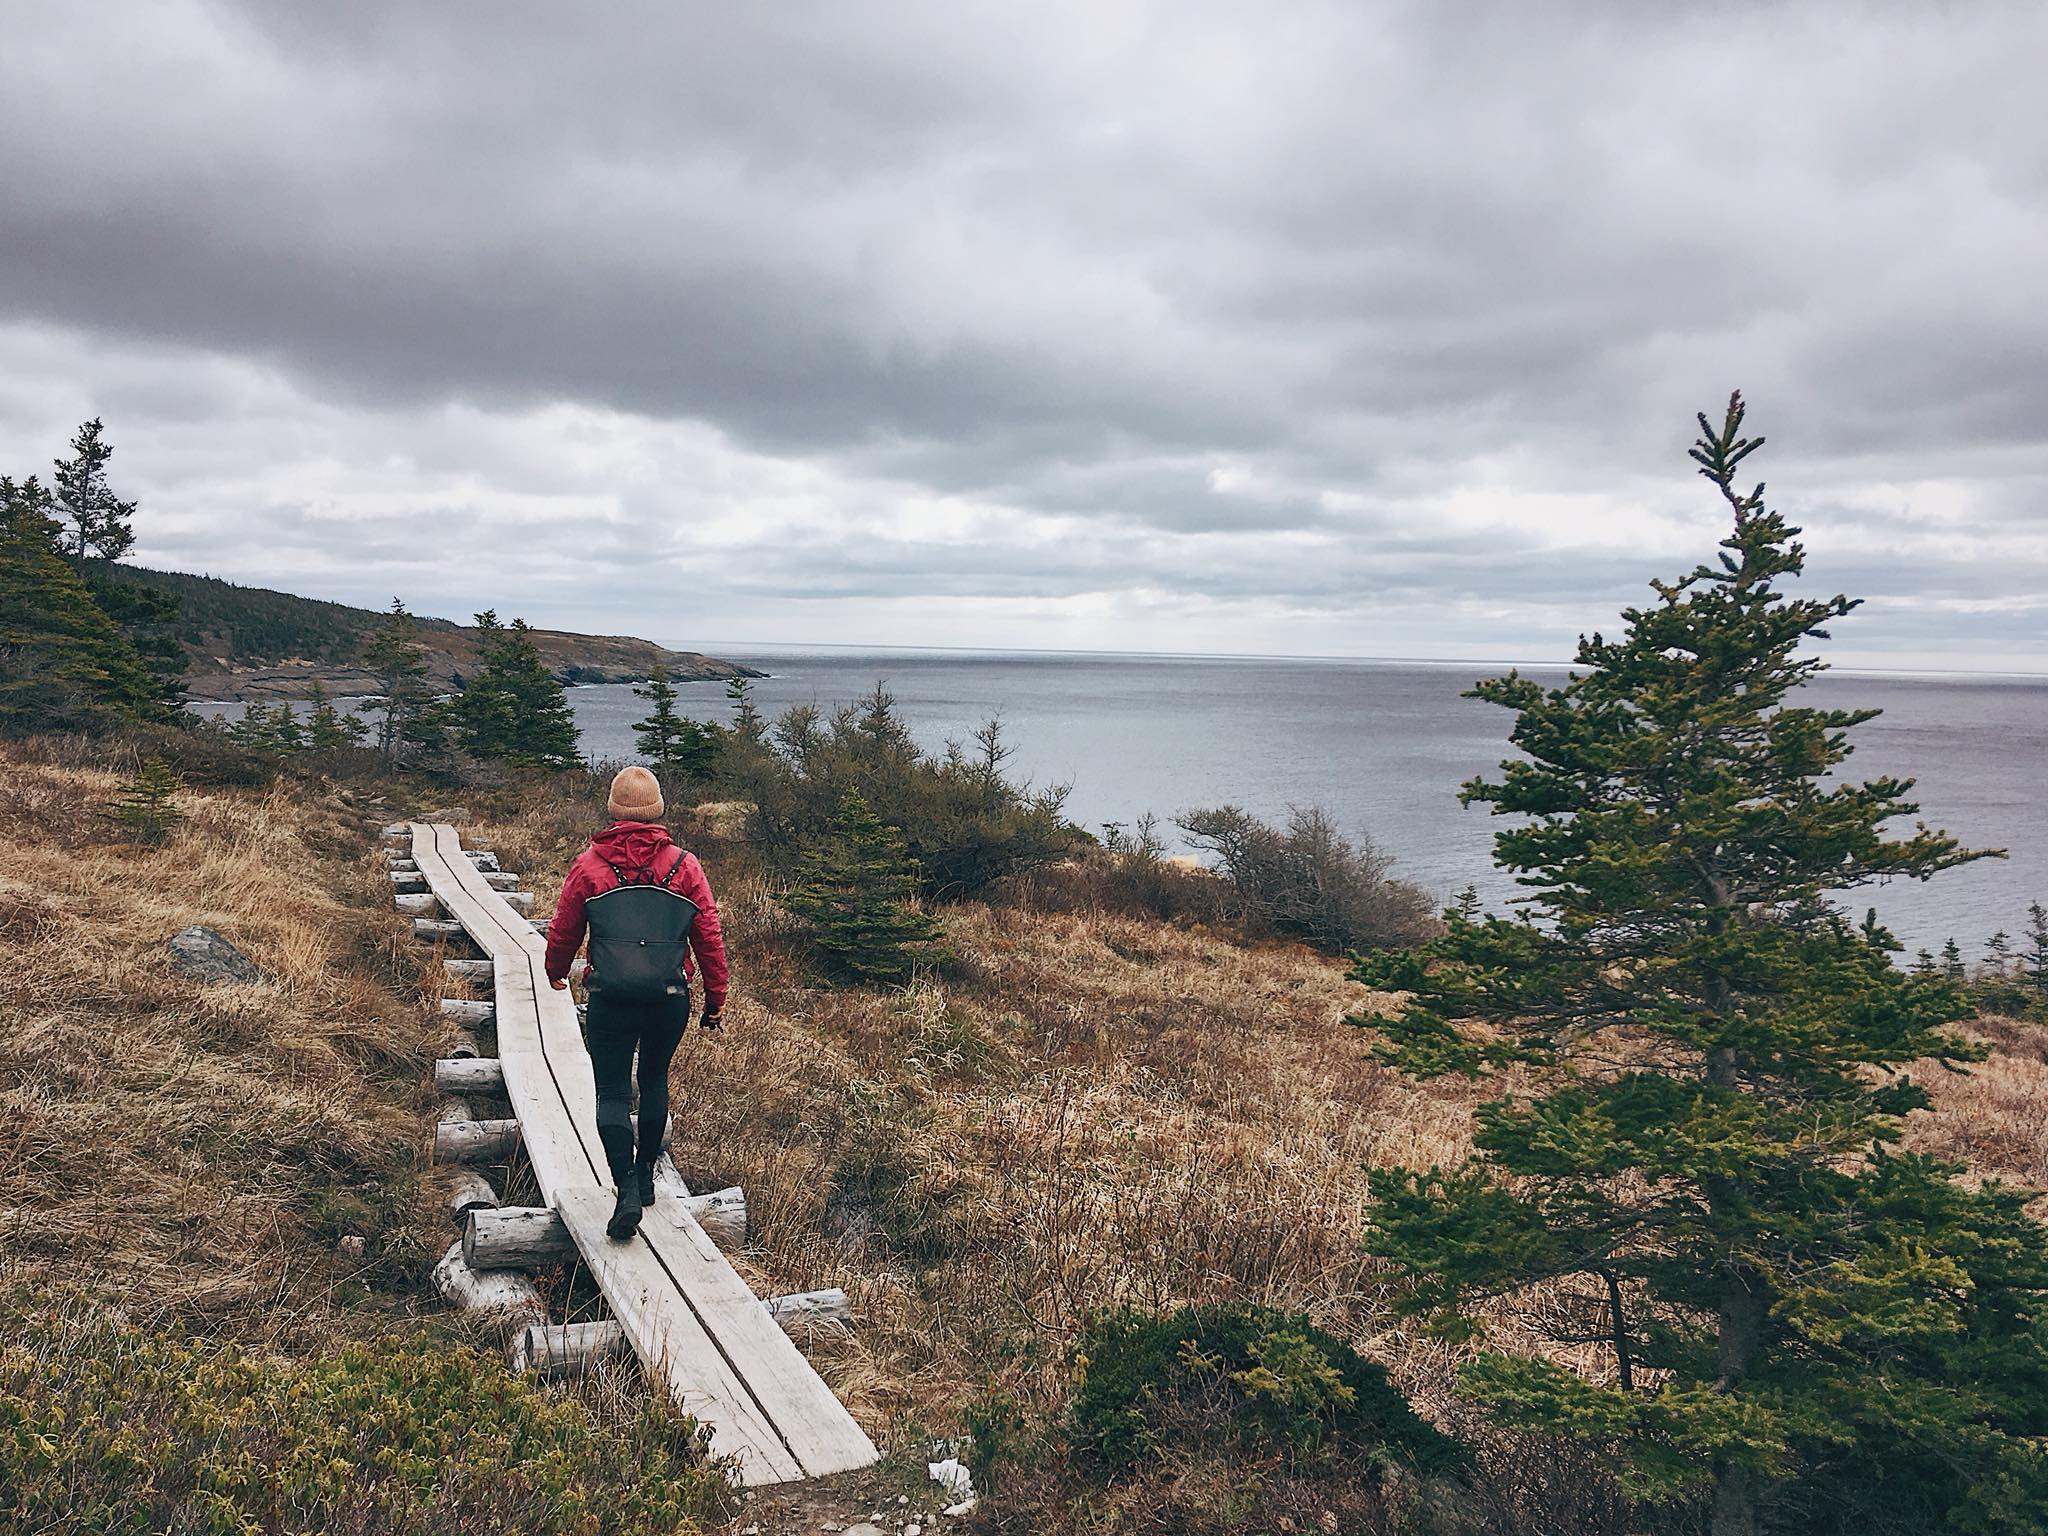 Hike at Bay Bulls, NL, May 2018.